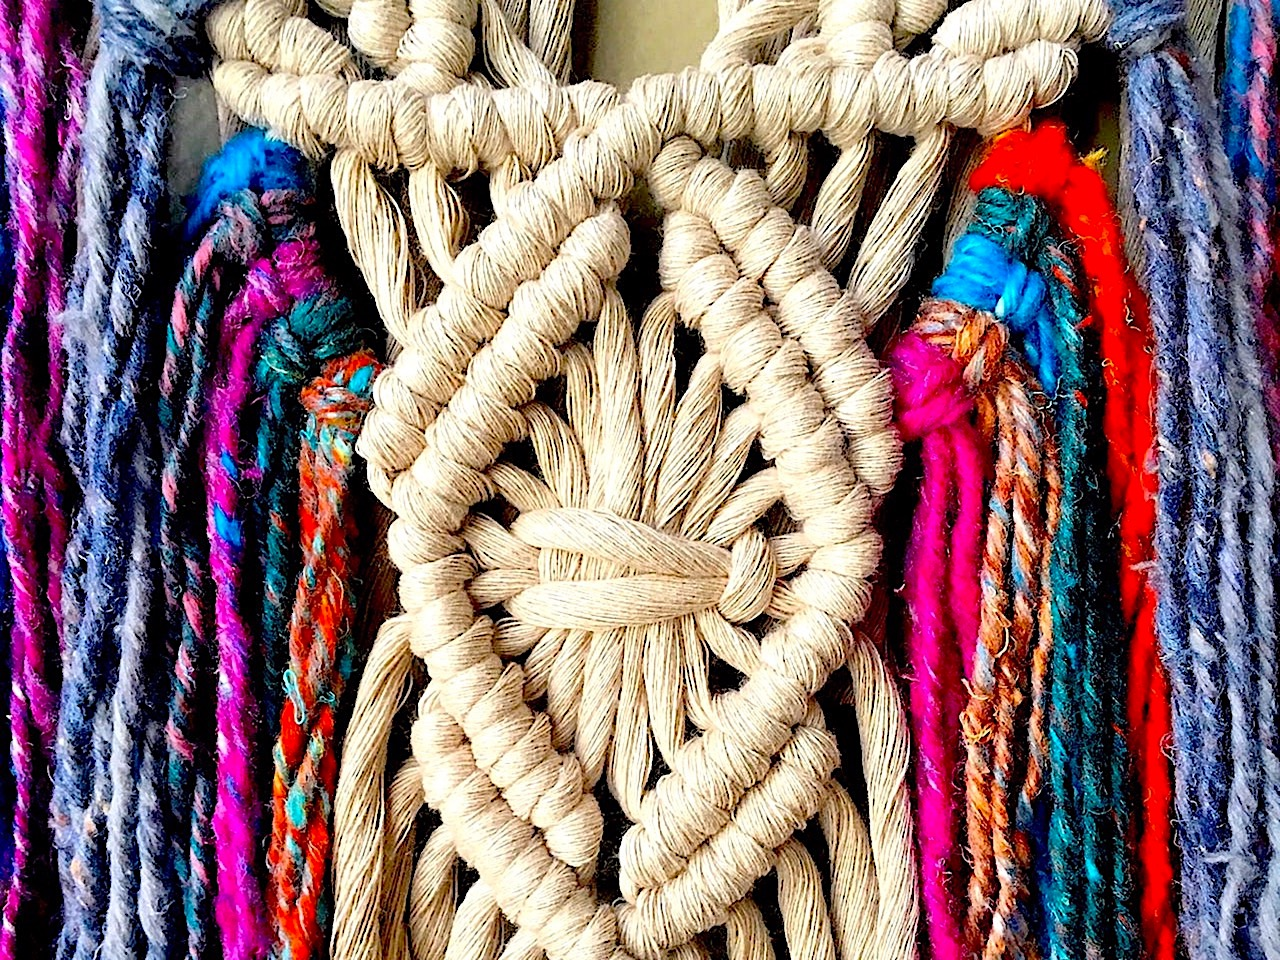 Macrame wall hanging with many vibrant strands